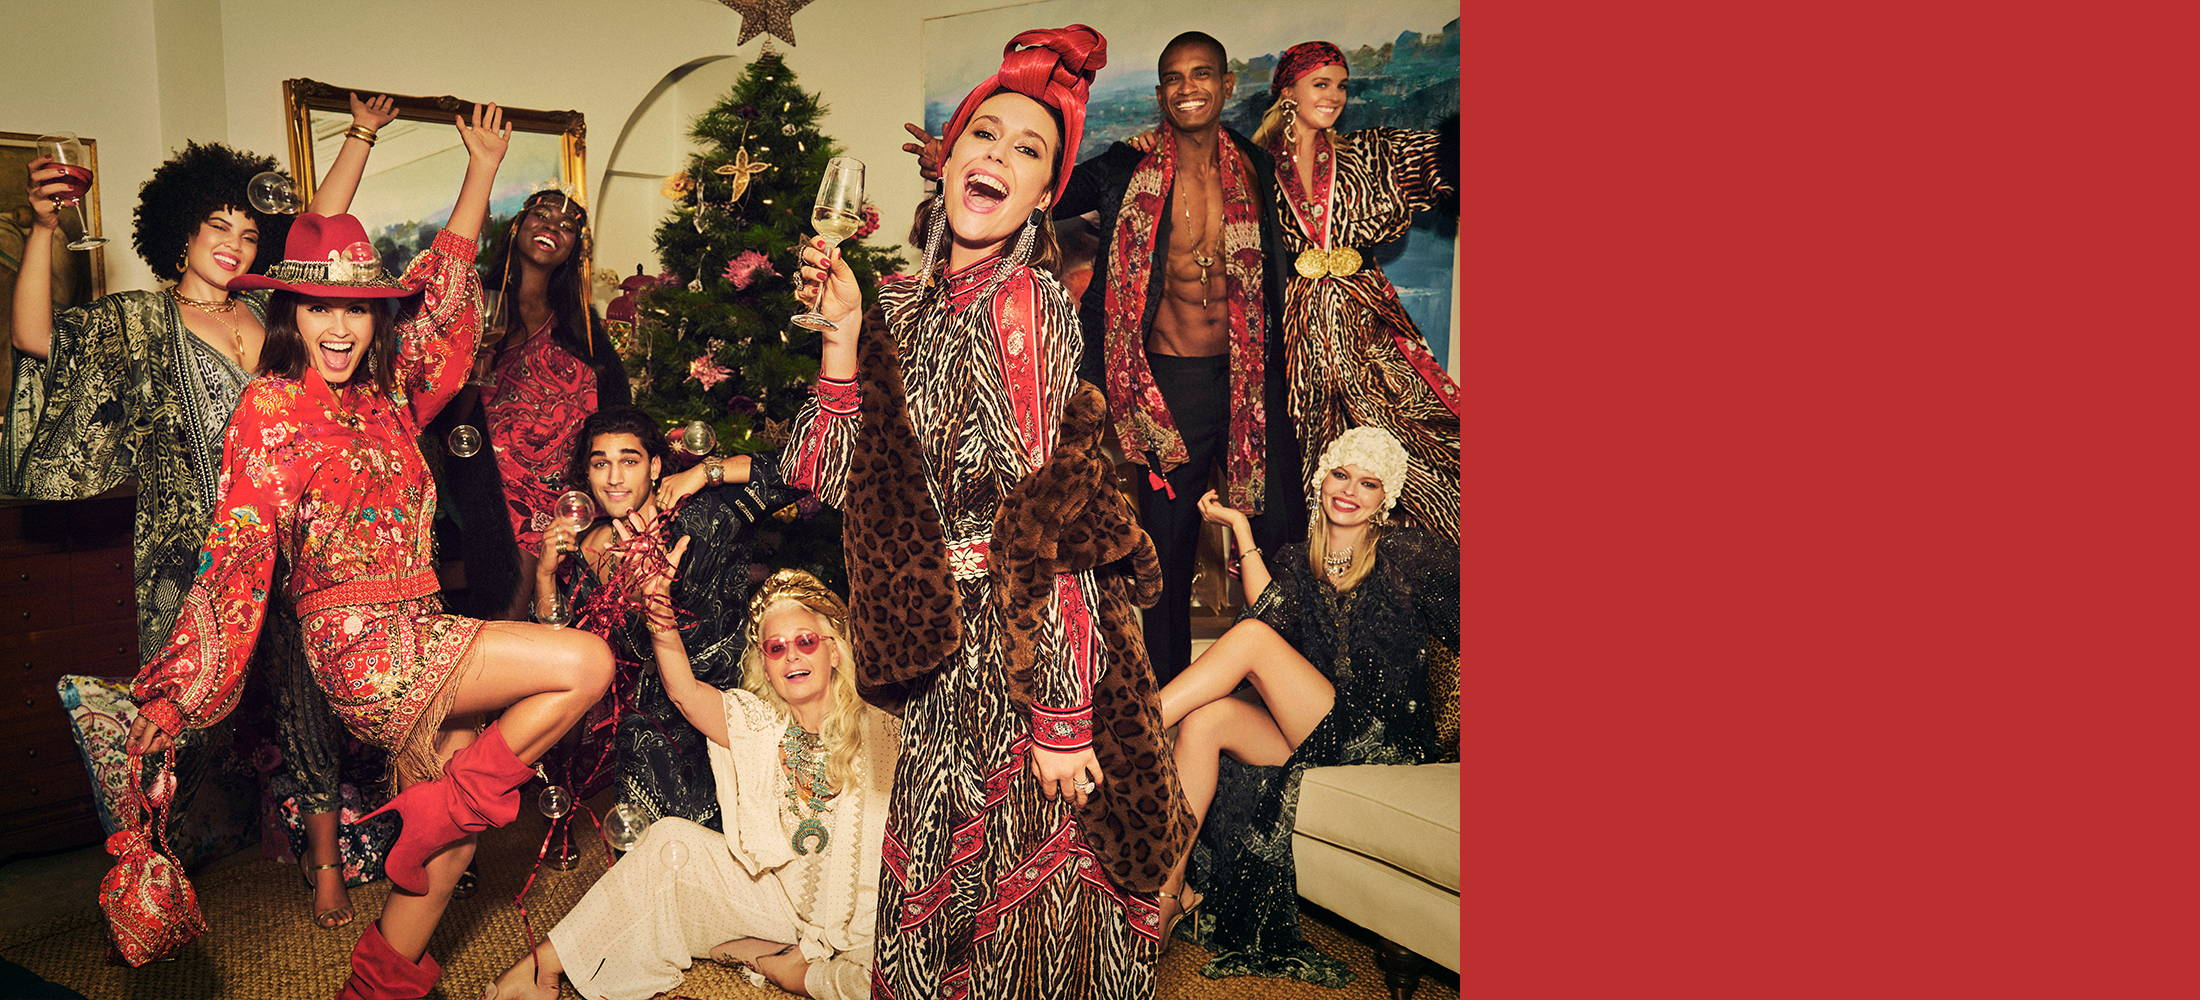 Models in CAMILLA outfits at a holiday party